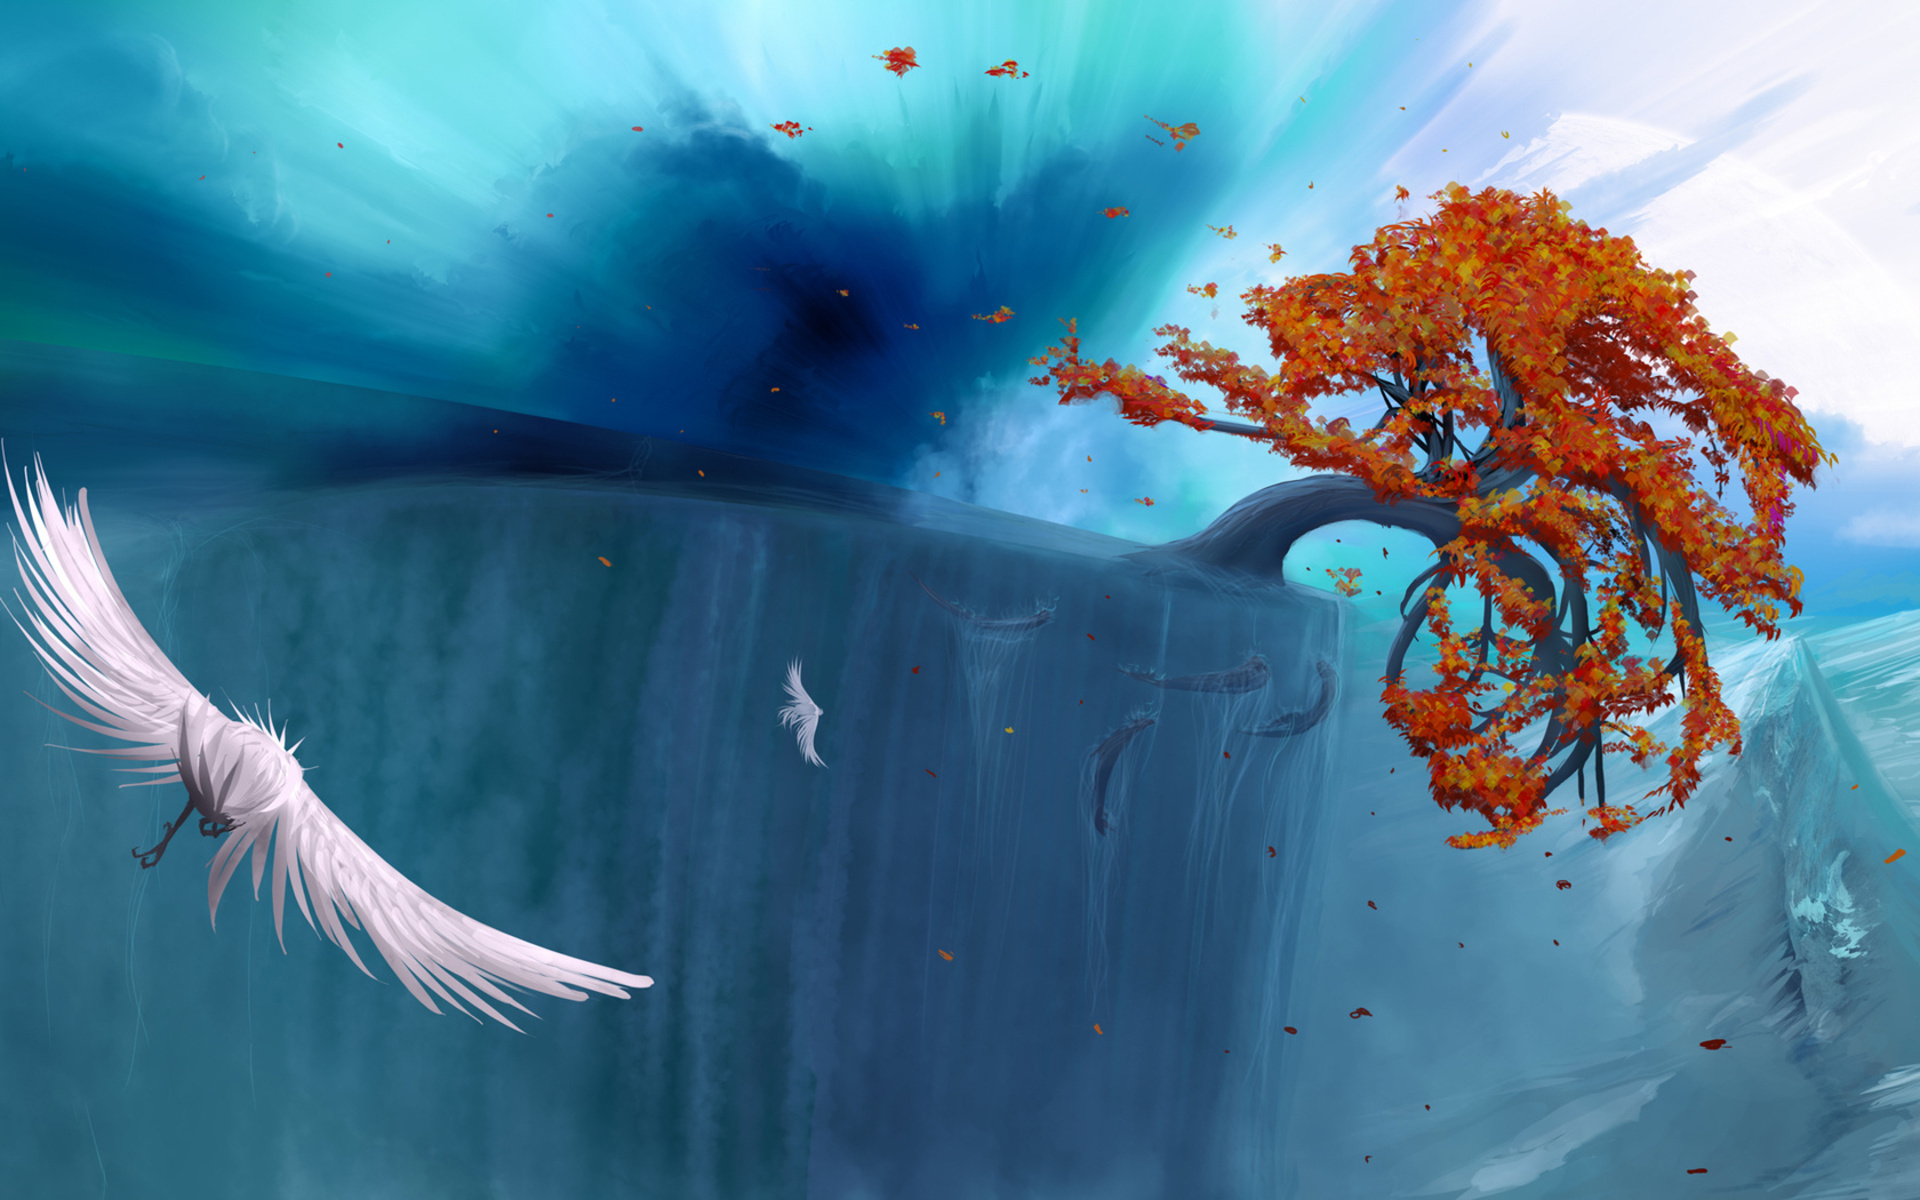 painting background images hd